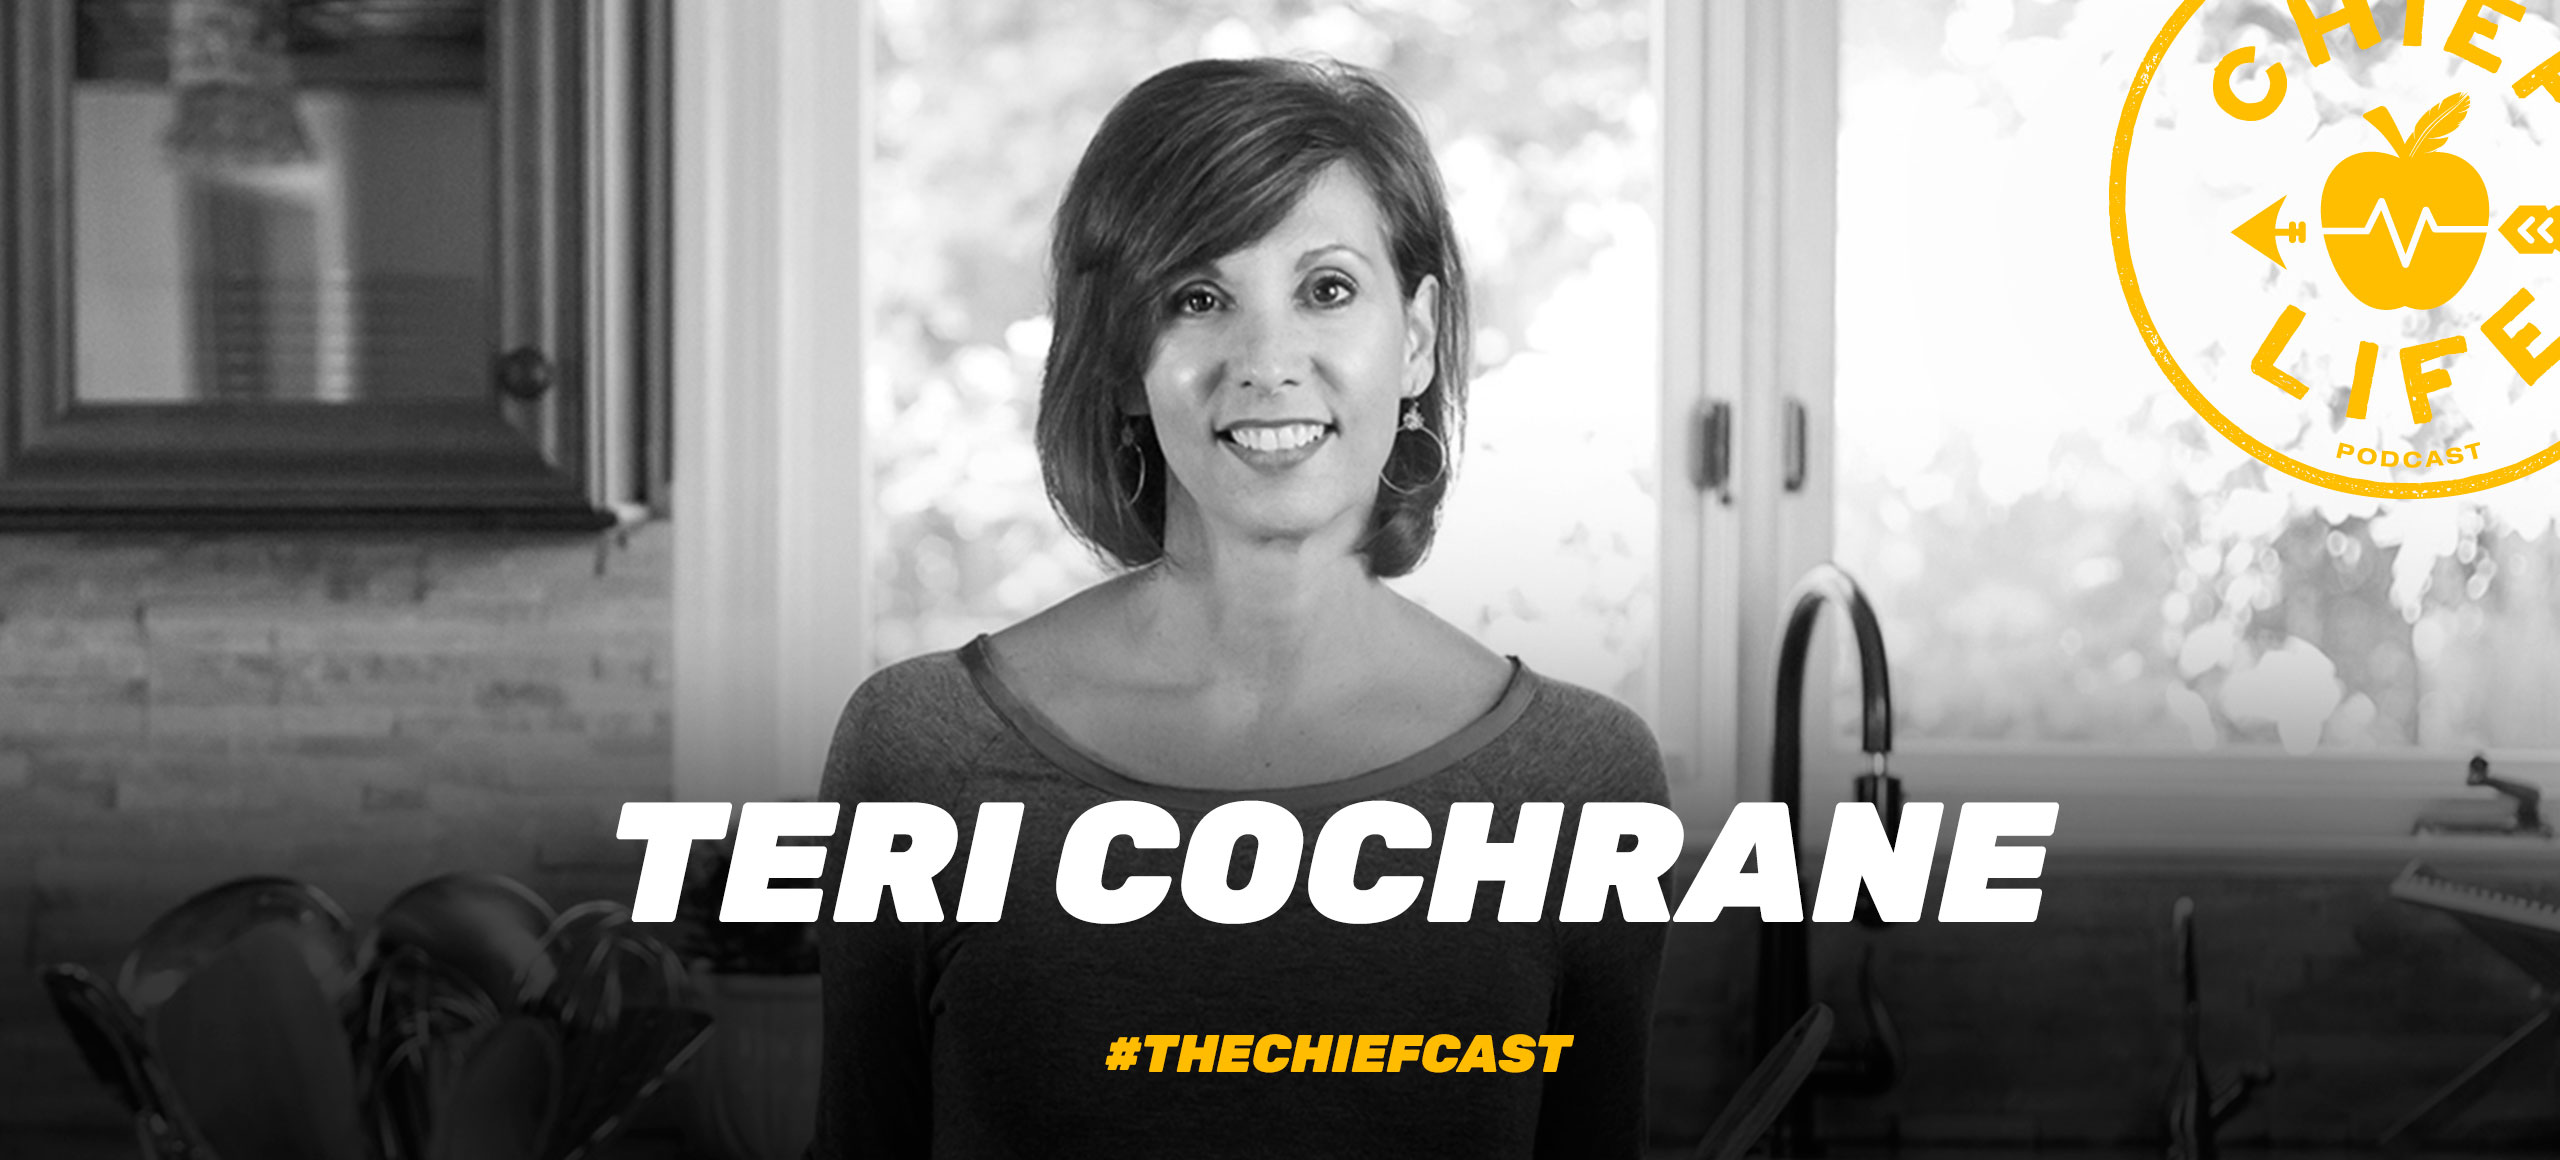 #202 – Wildatarian, Sulphur & Fat Malabsorption with Teri Cochrane